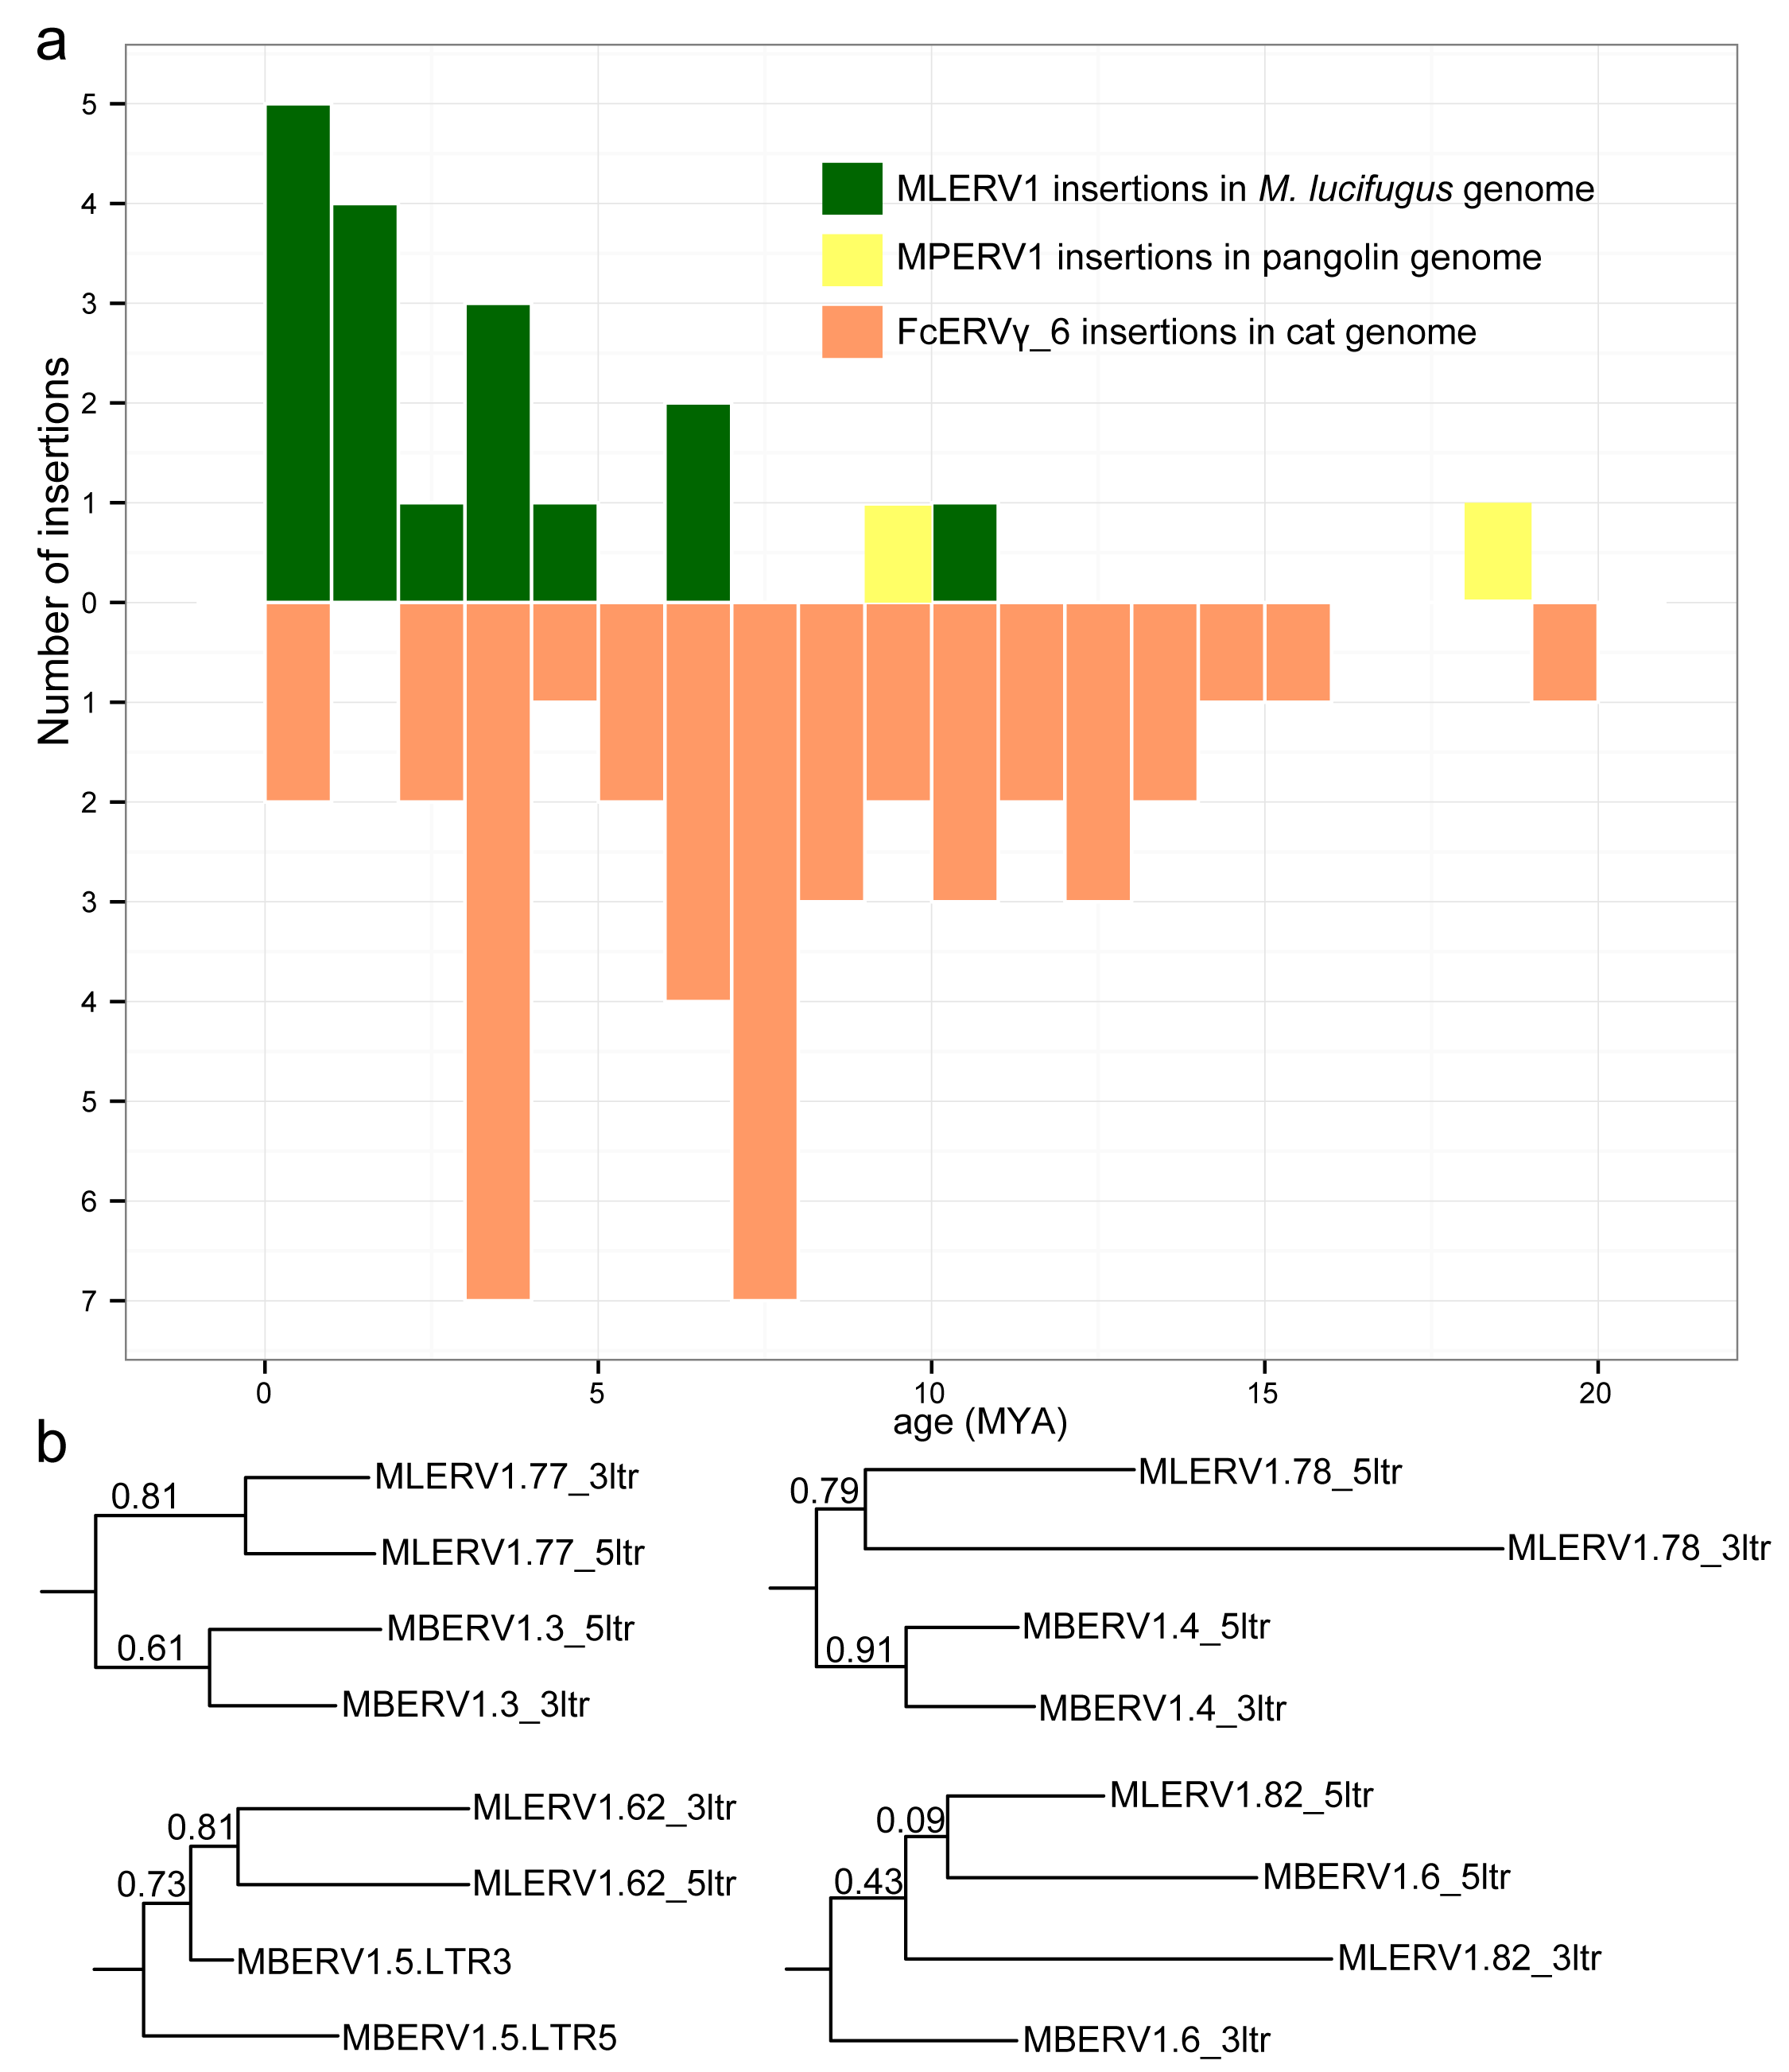 Dating individual proviral insertions based on LTR-LTR divergence.